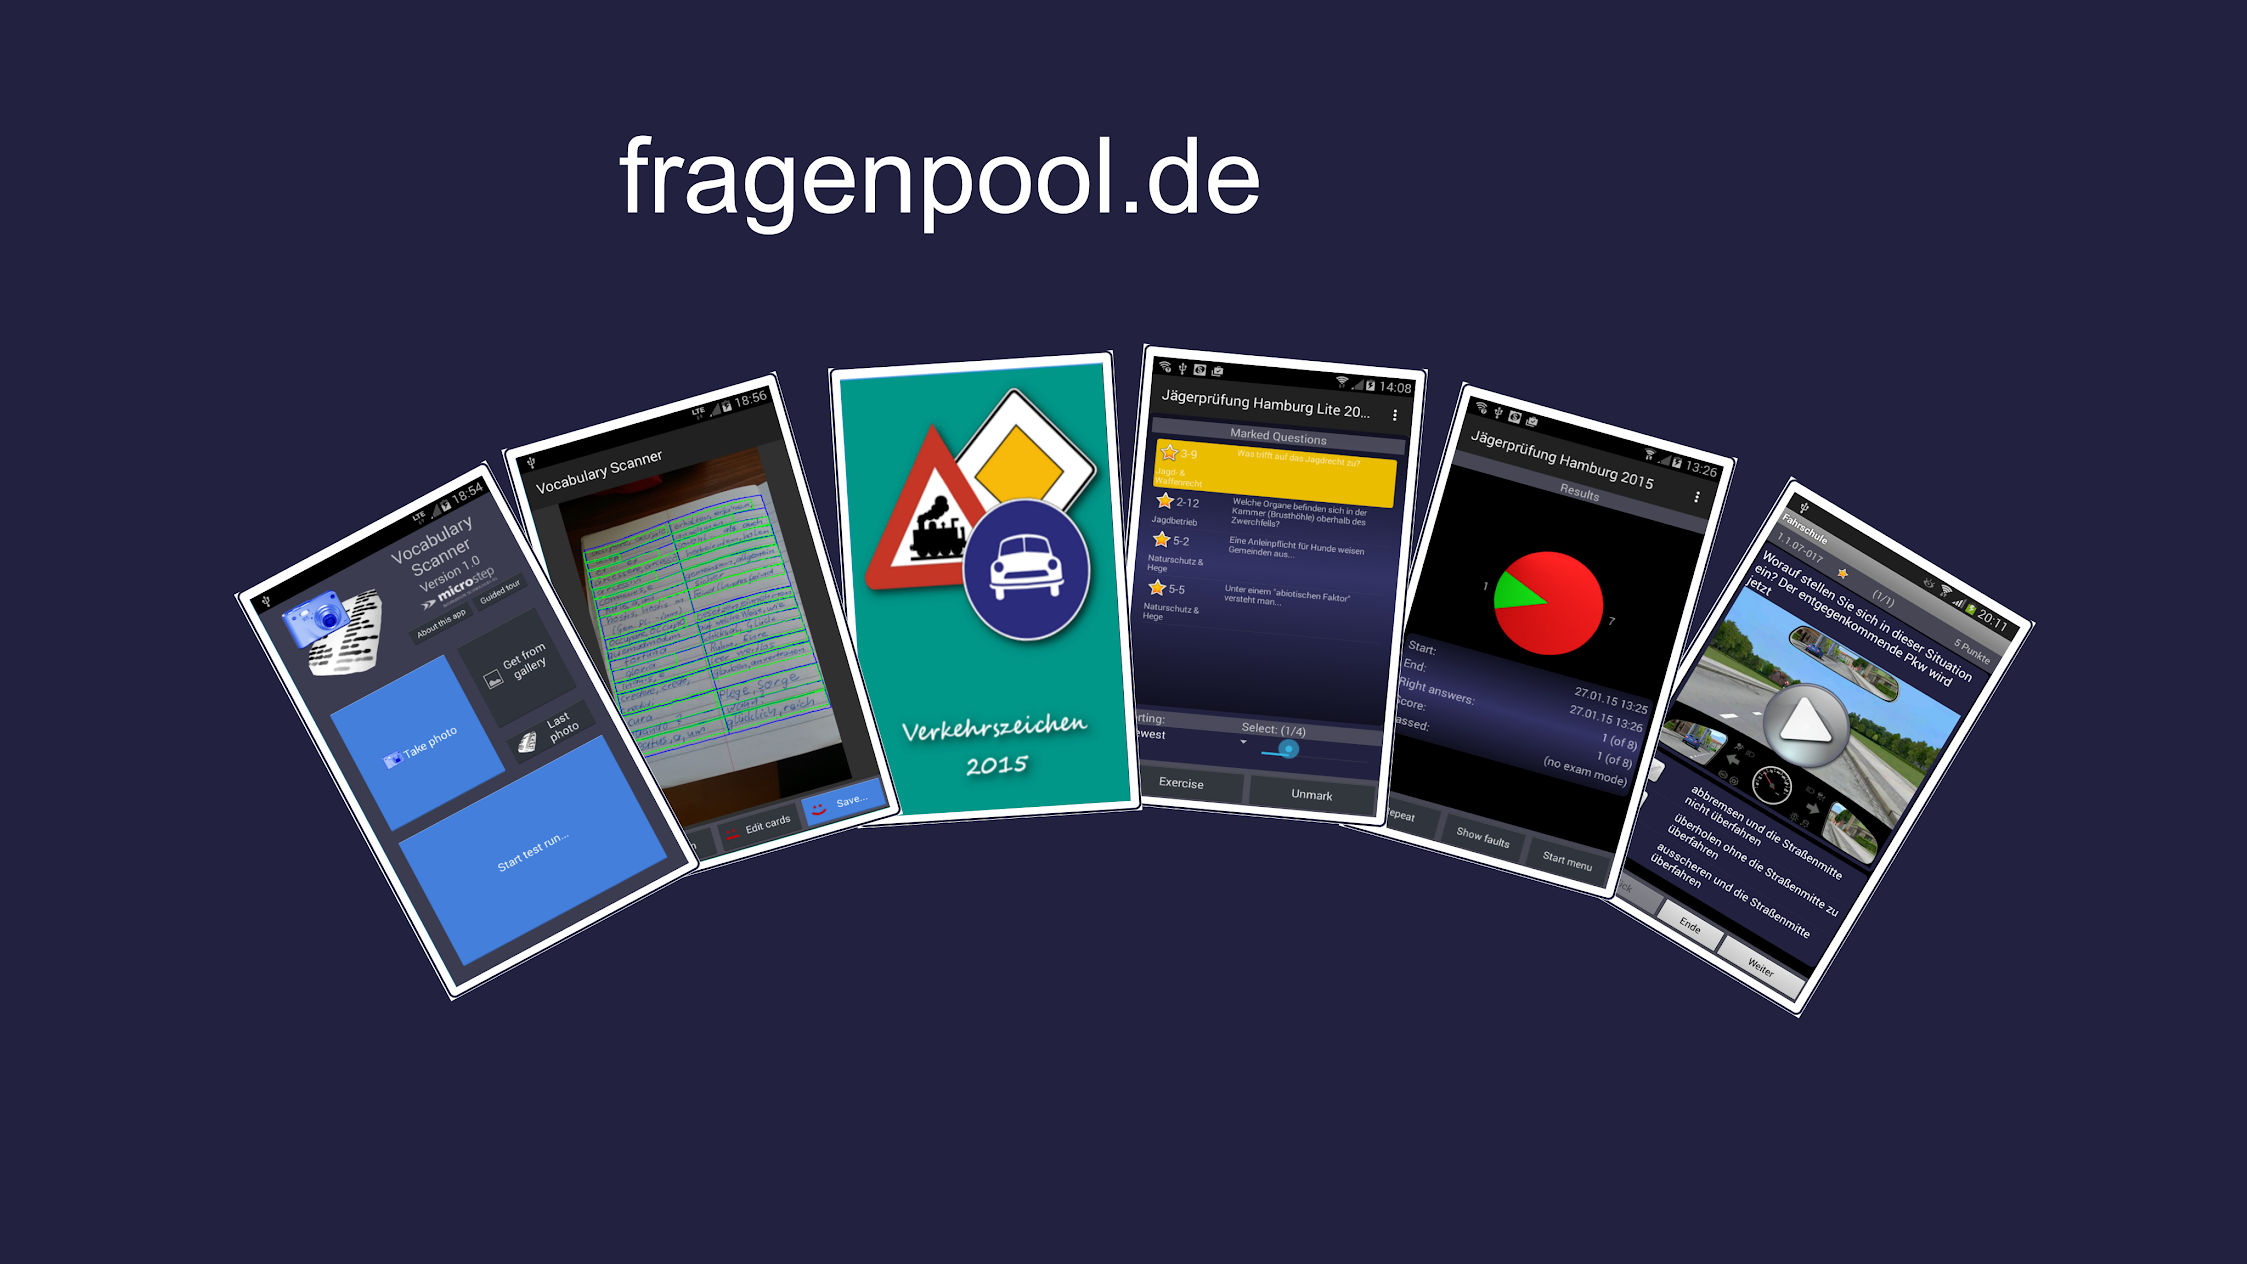 fragenpool.de